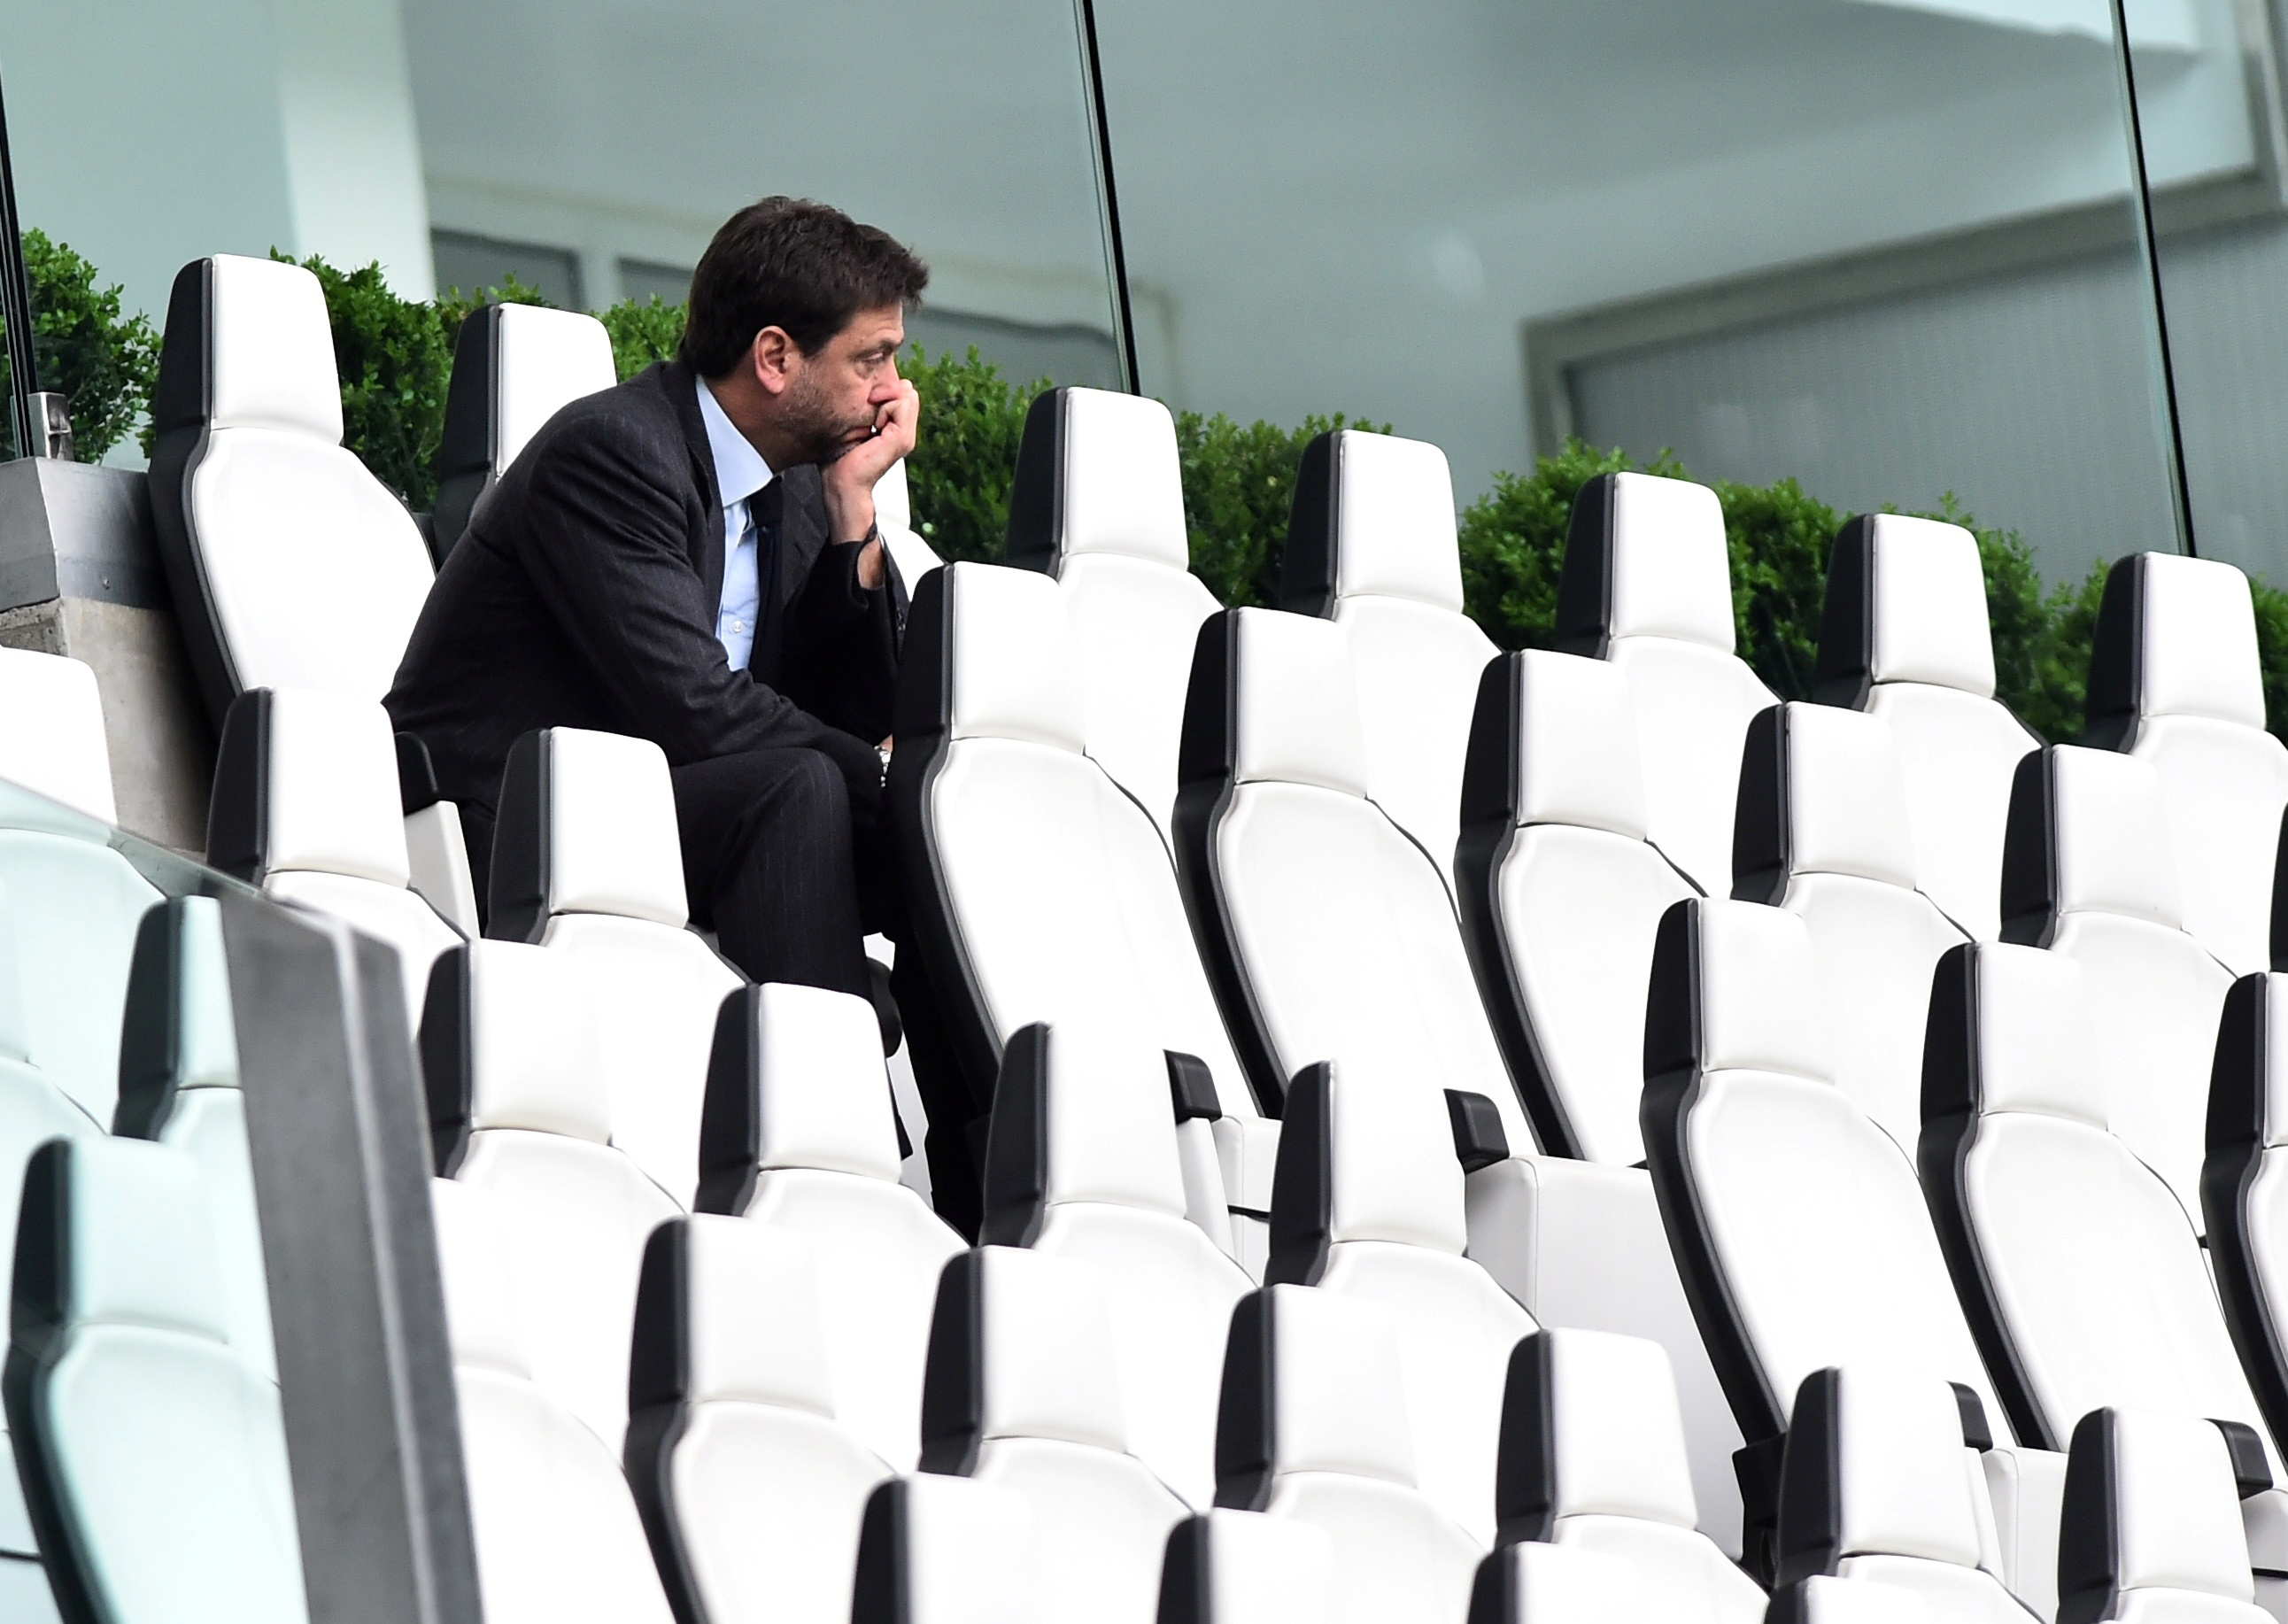 Soccer Football - Serie A - Juventus v Genoa - Allianz Stadium, Turin, Italy - April 11, 2021 Juventus president Andrea Agnelli sat in the stands before the match REUTERS/Massimo Pinca/File Photo